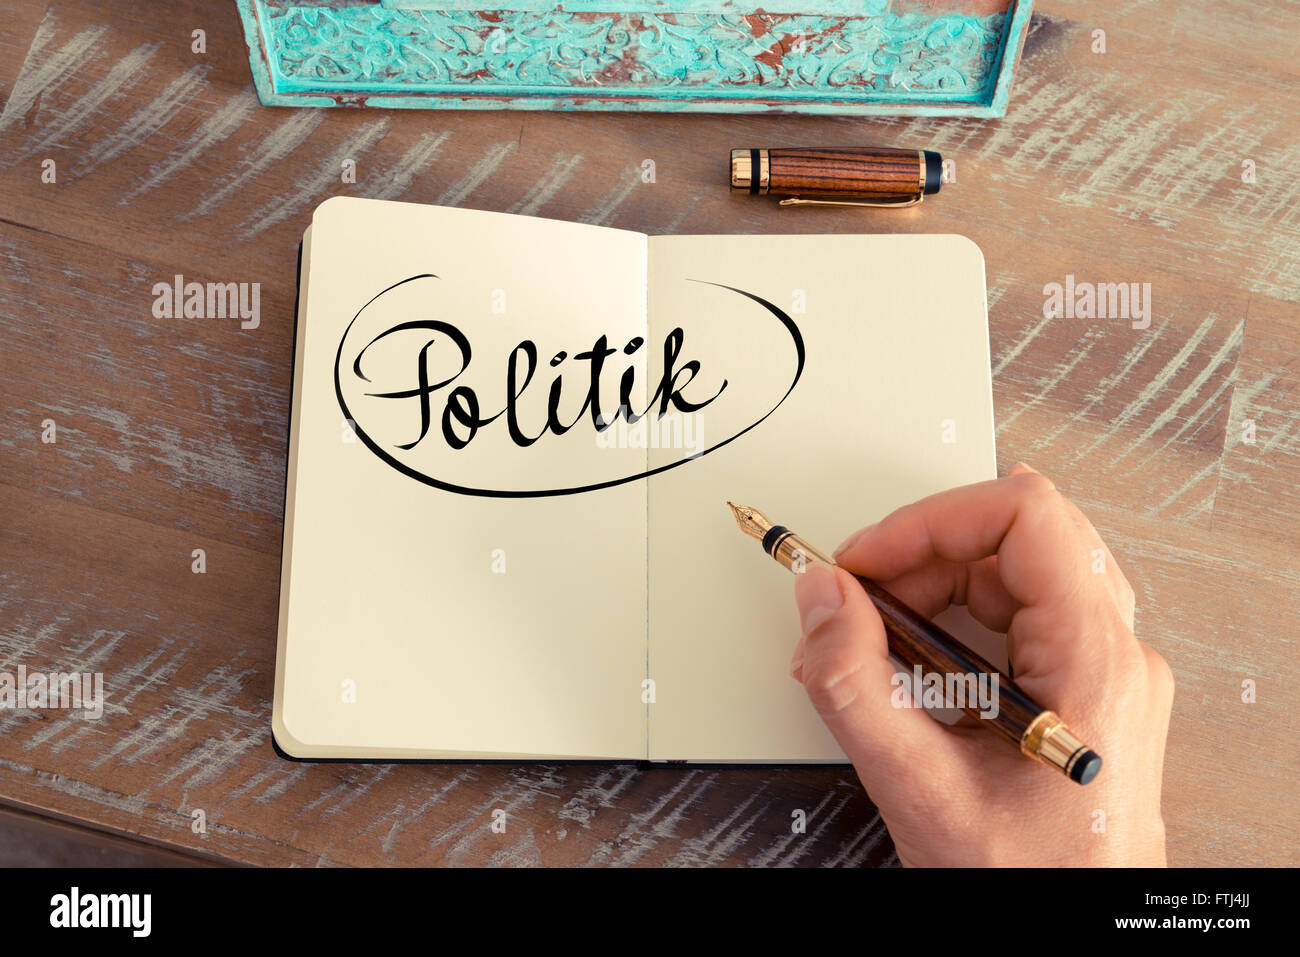 Handwritten text in German 'Politik'  - translation : Politics as business concept image - Stock Image